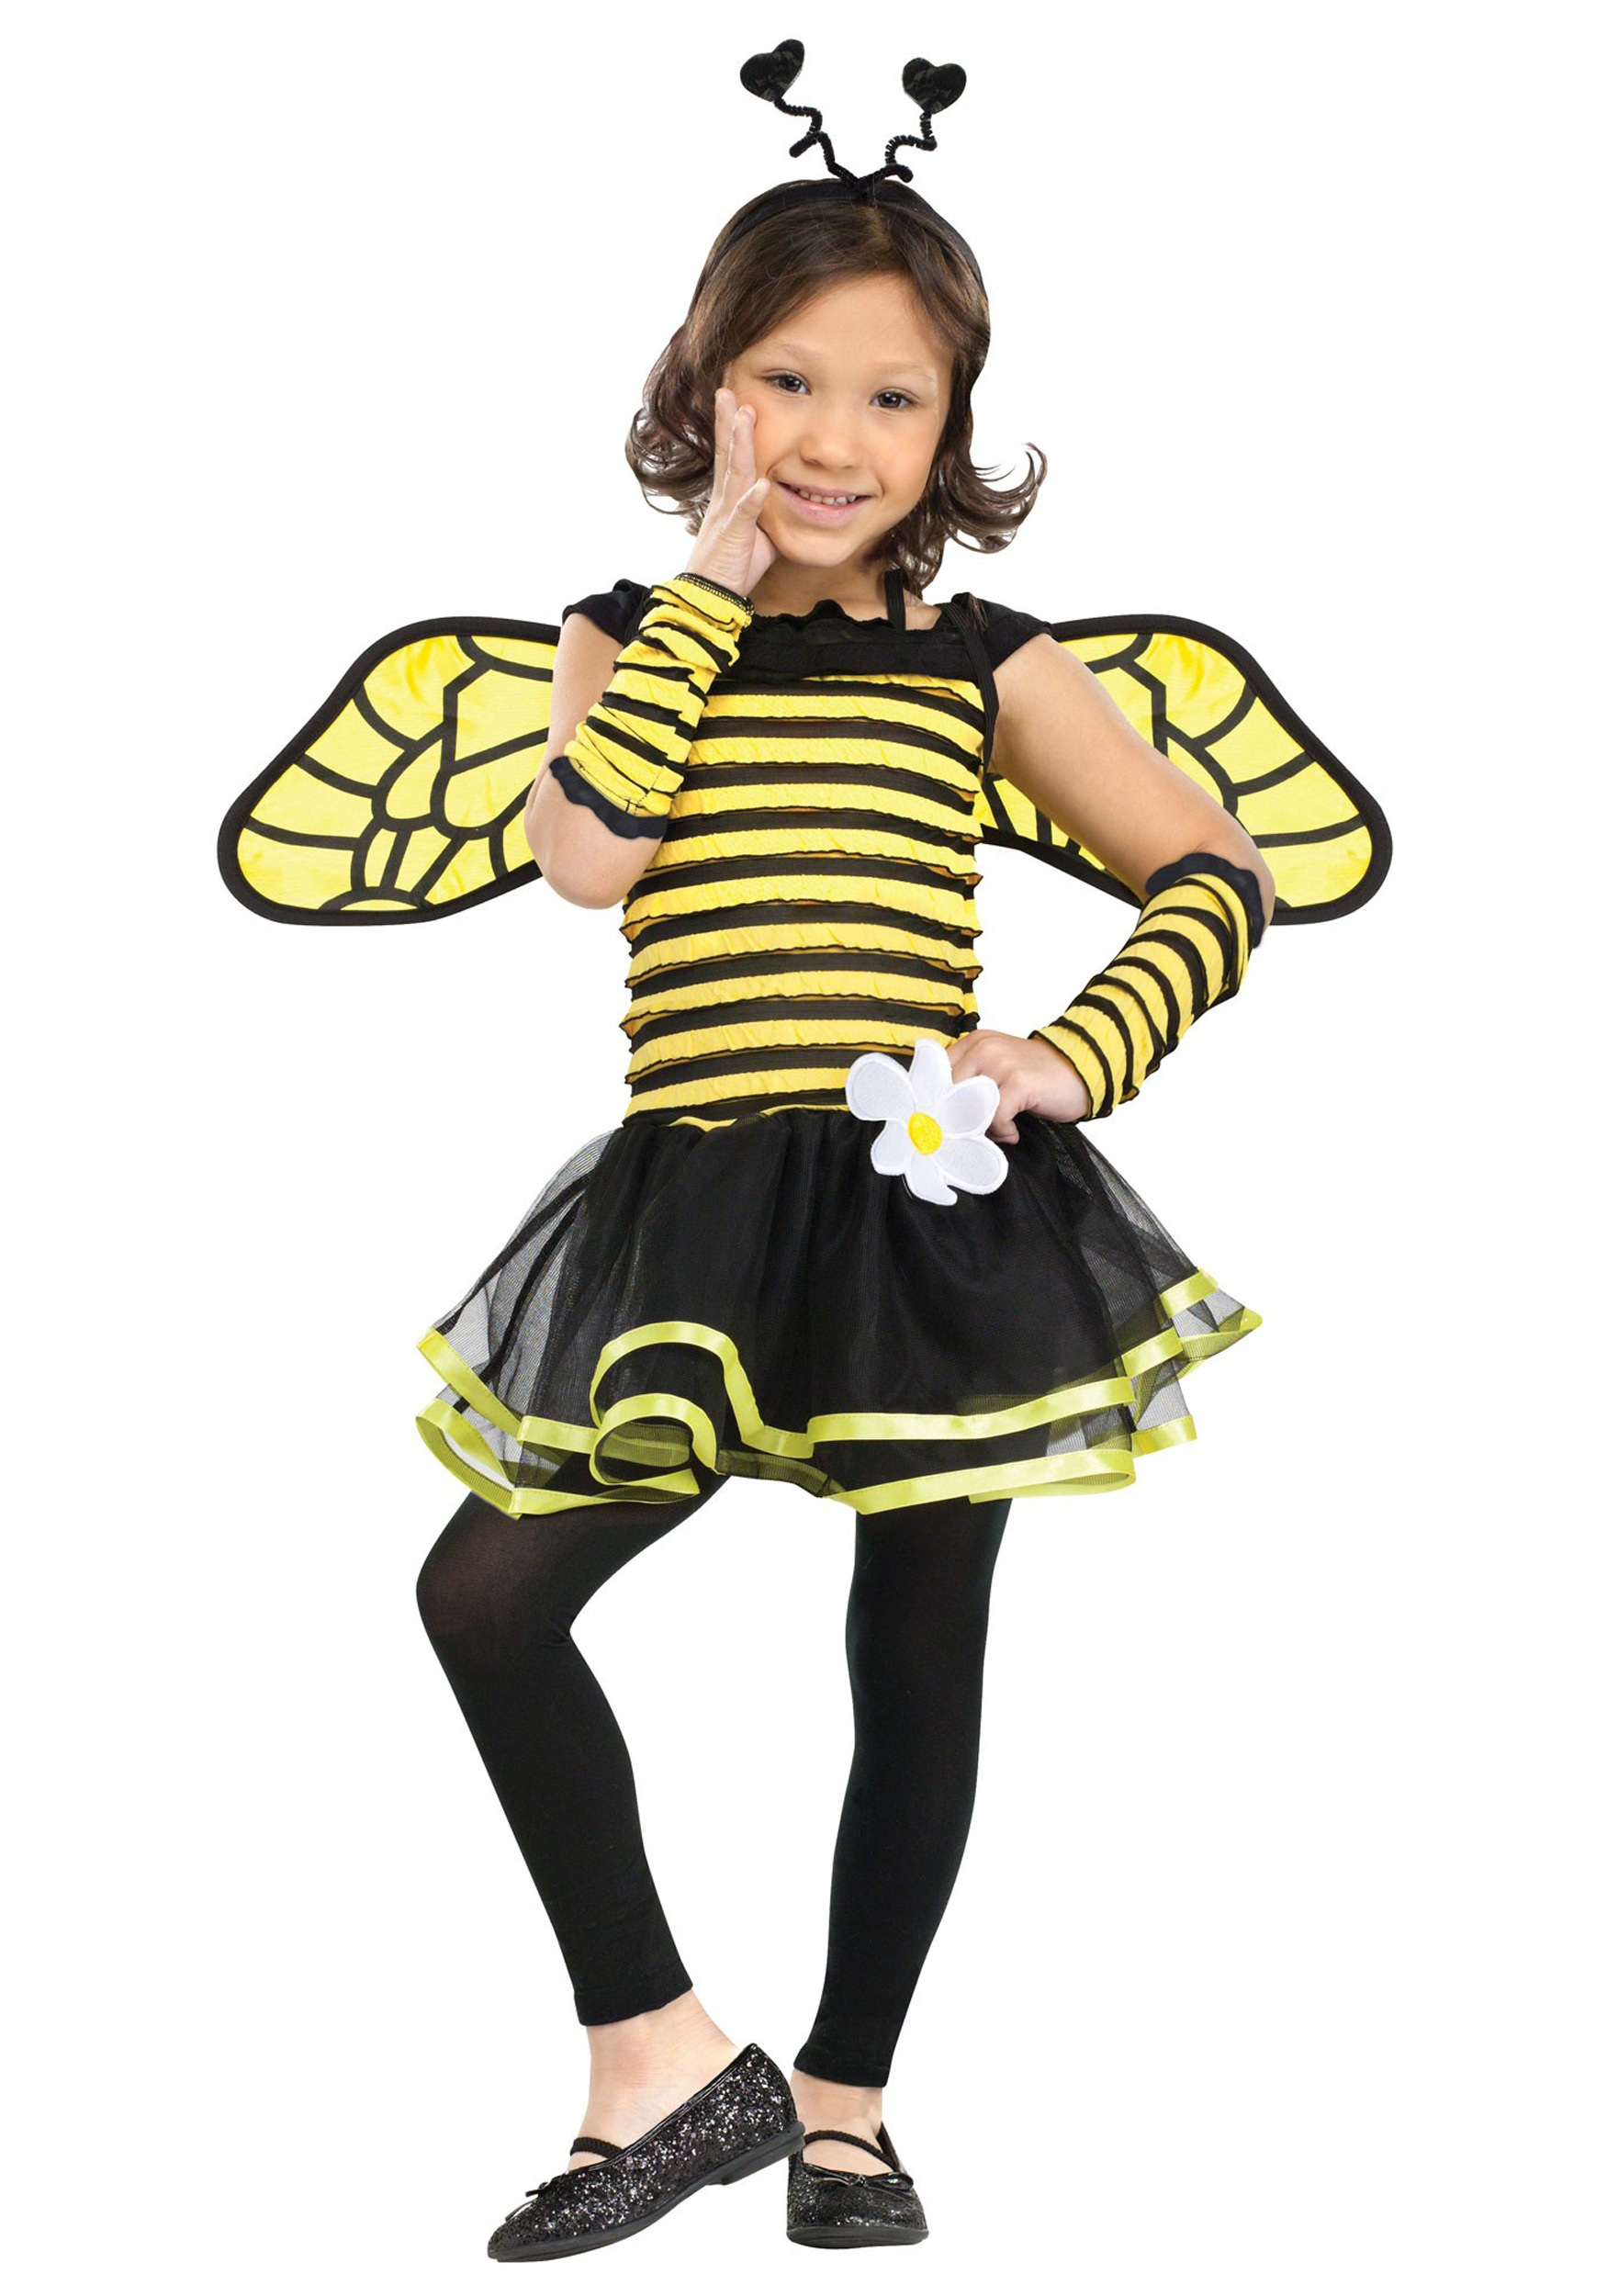 Toddler Busy Bee Costume  sc 1 st  Halloween Costumes & Toddler Busy Bee Costume - Halloween Costumes